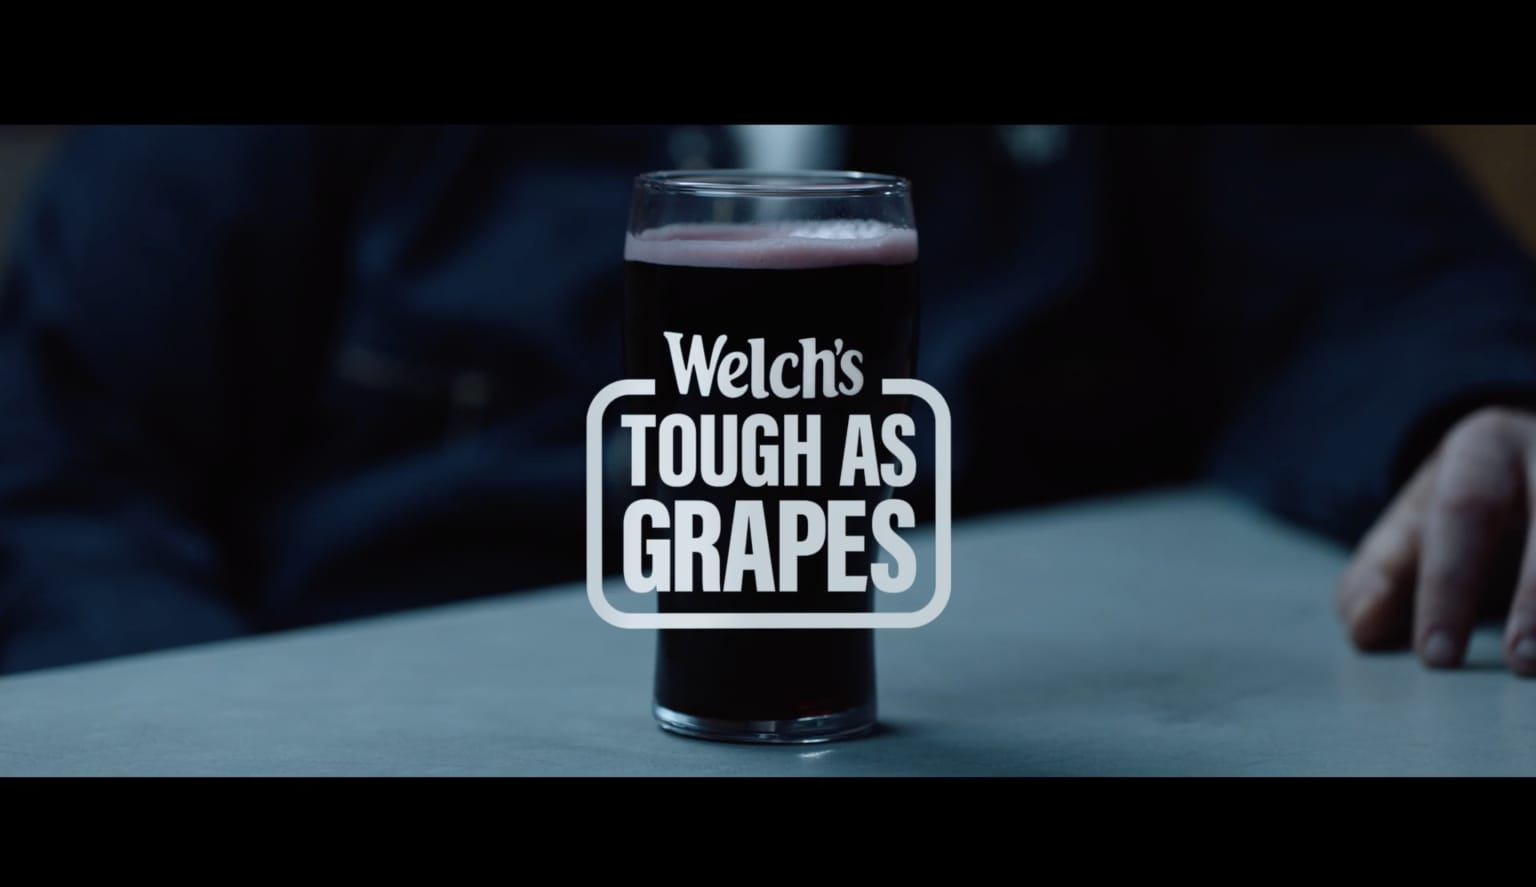 Welch's Tough As Grapes